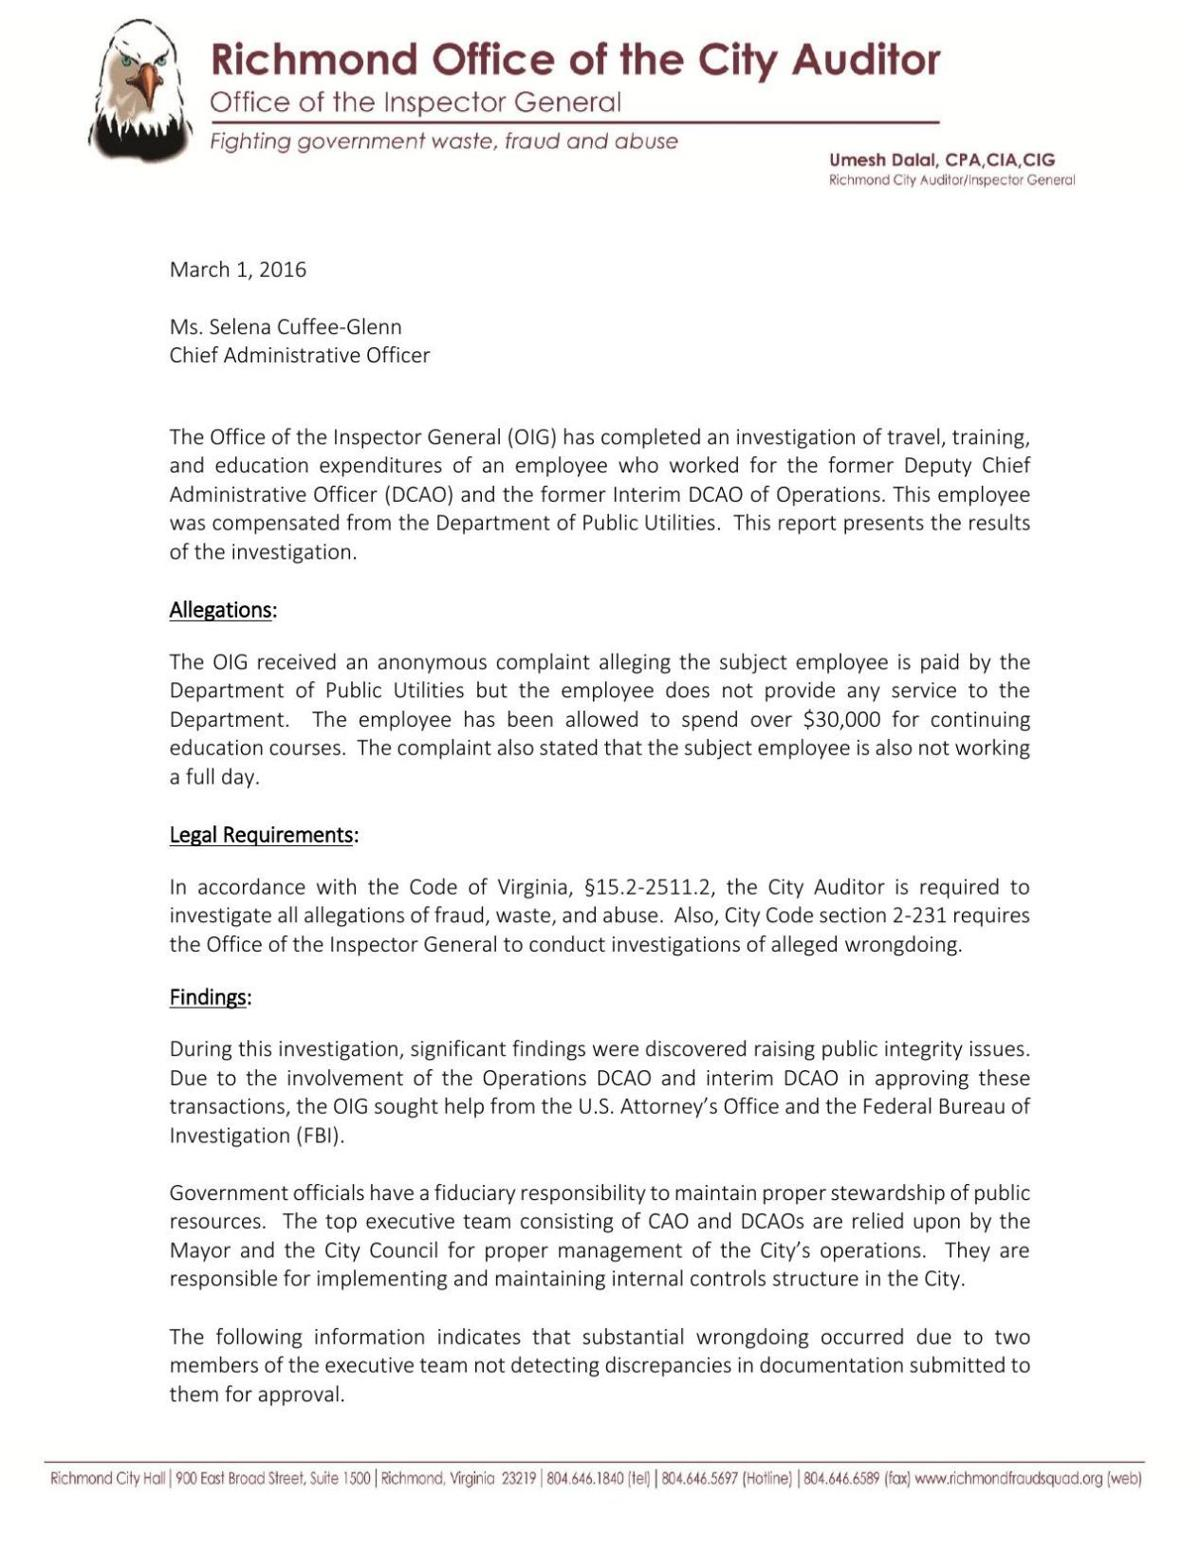 PDF: Richmond Auditor's report on misuse of city funds